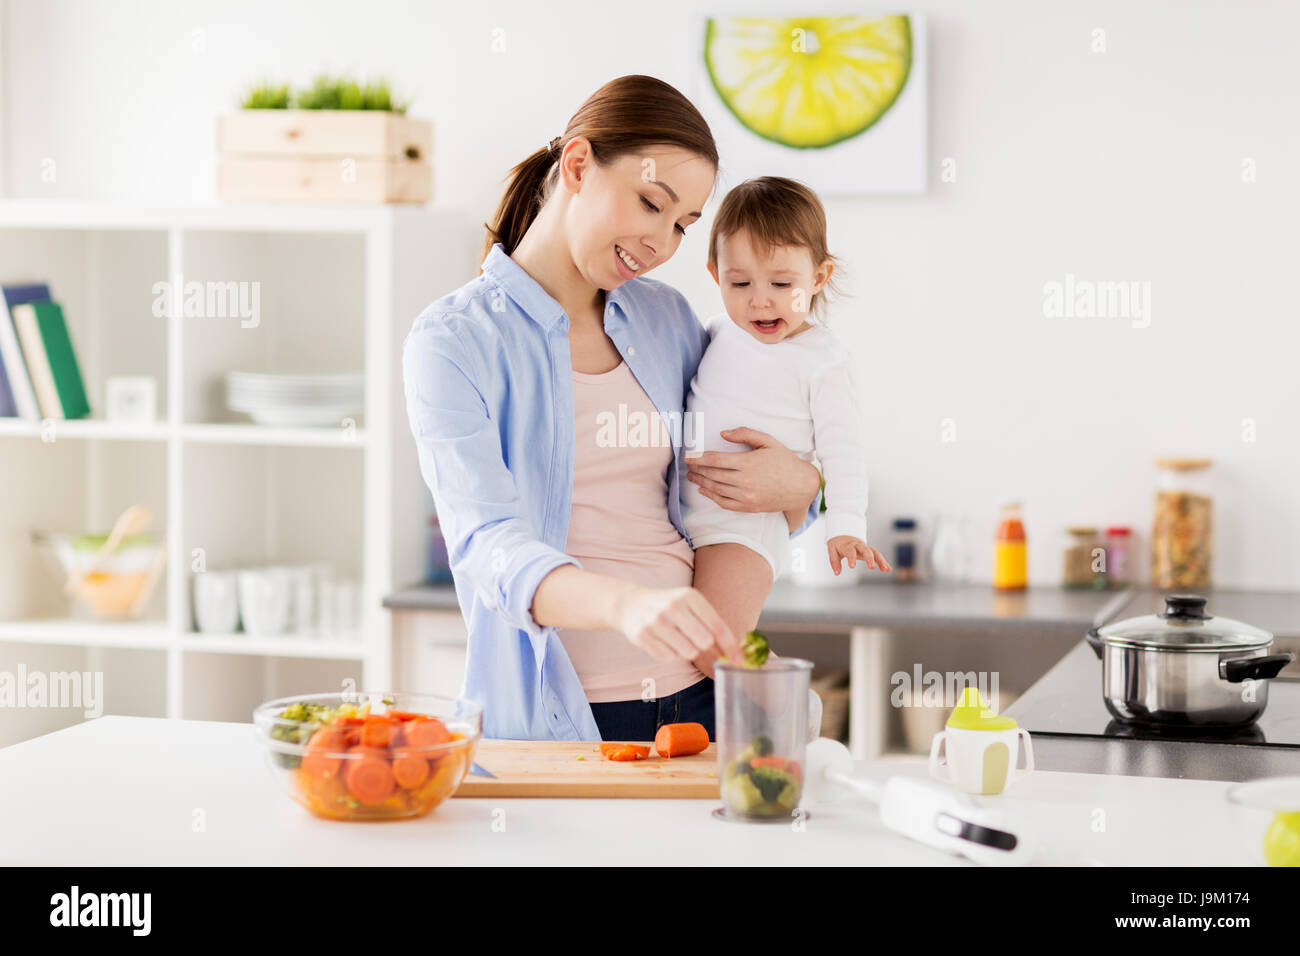 happy mother and baby cooking food at home kitchen Stock